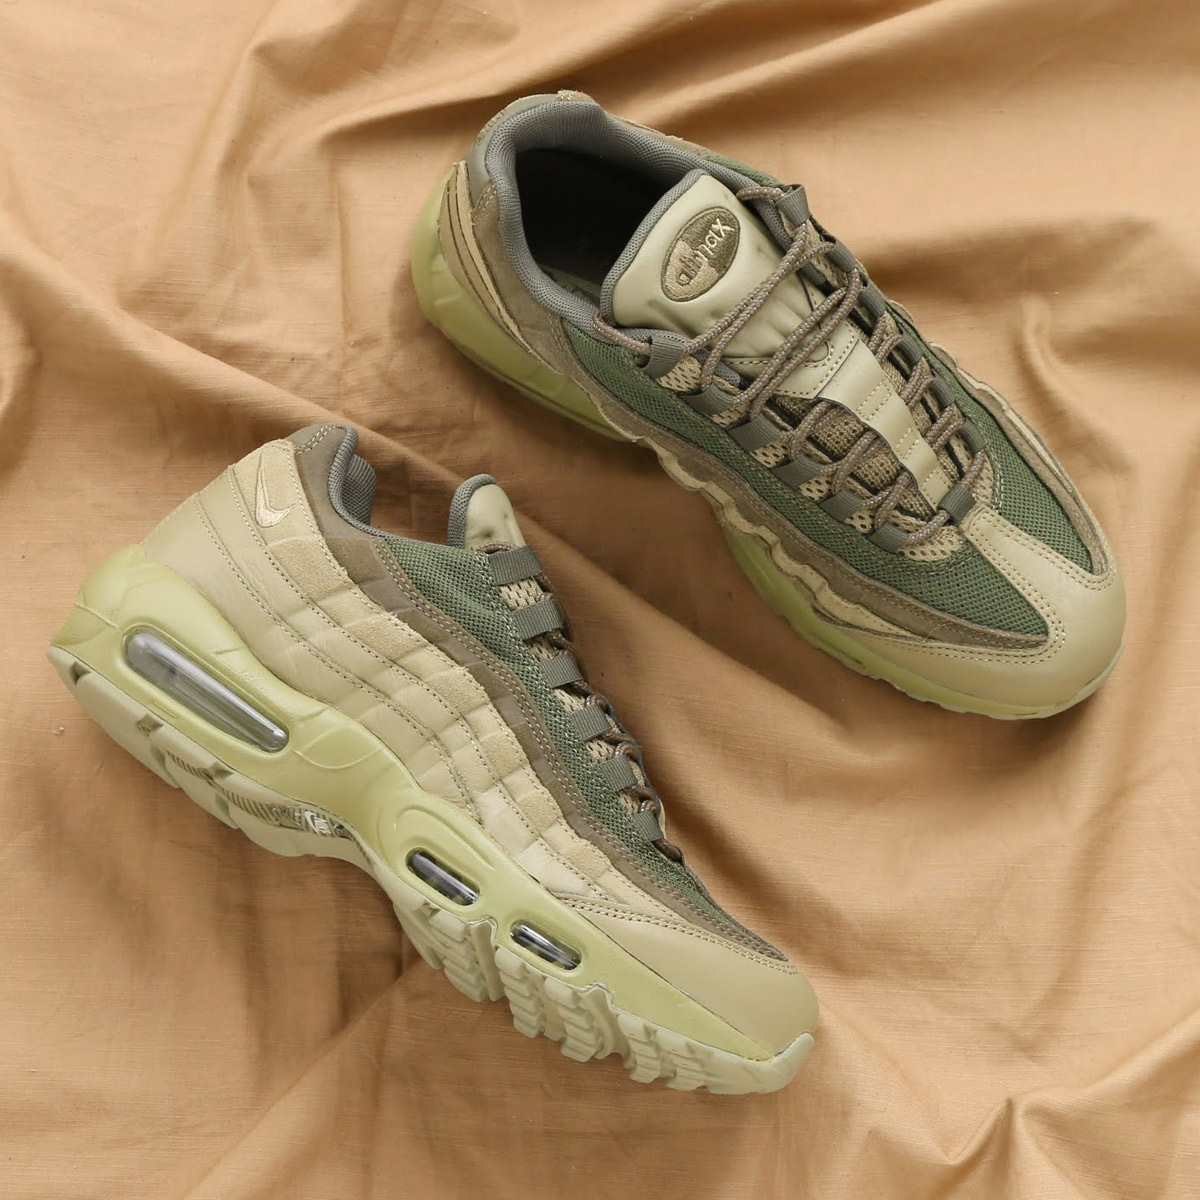 d9efba8645f4fa maximum point 10 times that is targeted for all articles! NIKE AIR MAX 95  PRM (Kie Ney AMAX 95 premium) (NEUTRAL OLIVE NEUTRAL OLIVE-MEDIUM OLIVE)  18SP-S